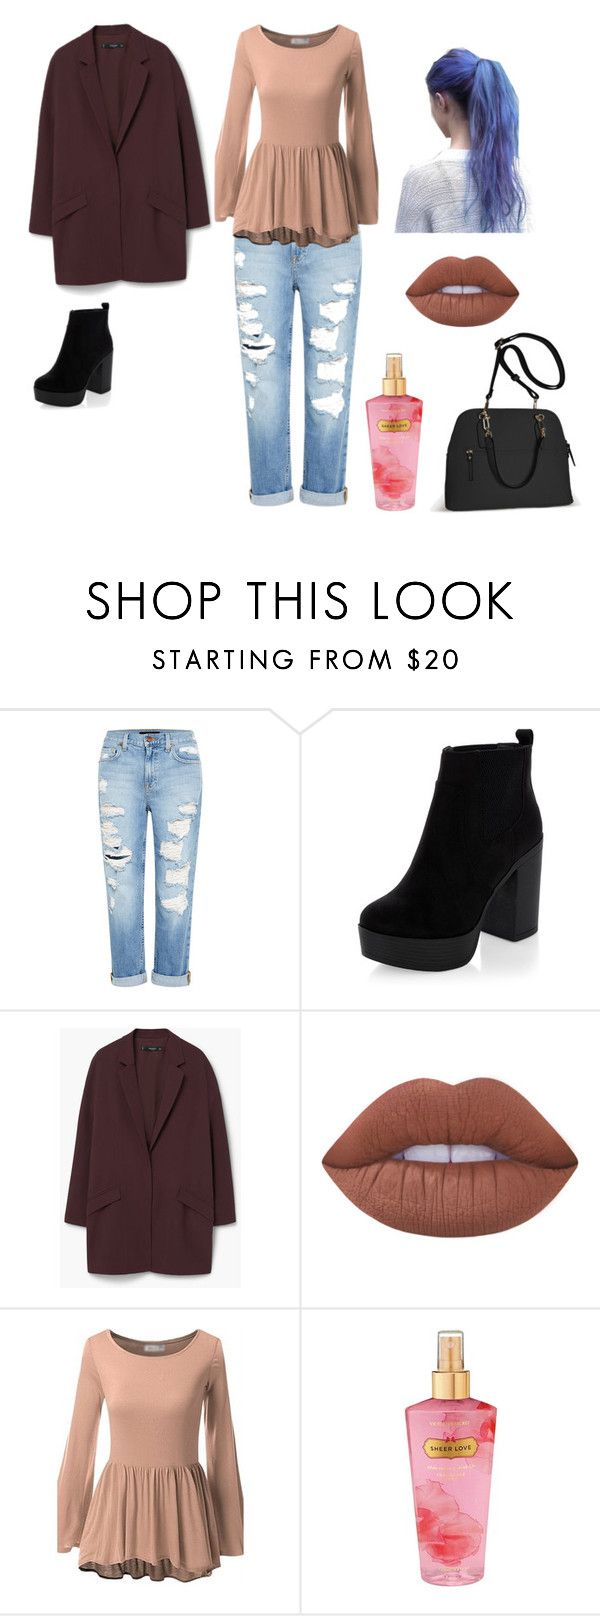 """""""Untitled #5"""" by paula-andrea-rivera ❤ liked on Polyvore featuring beauty, Genetic Denim, New Look, MANGO, Lime Crime, Victoria's Secret and Avenue"""